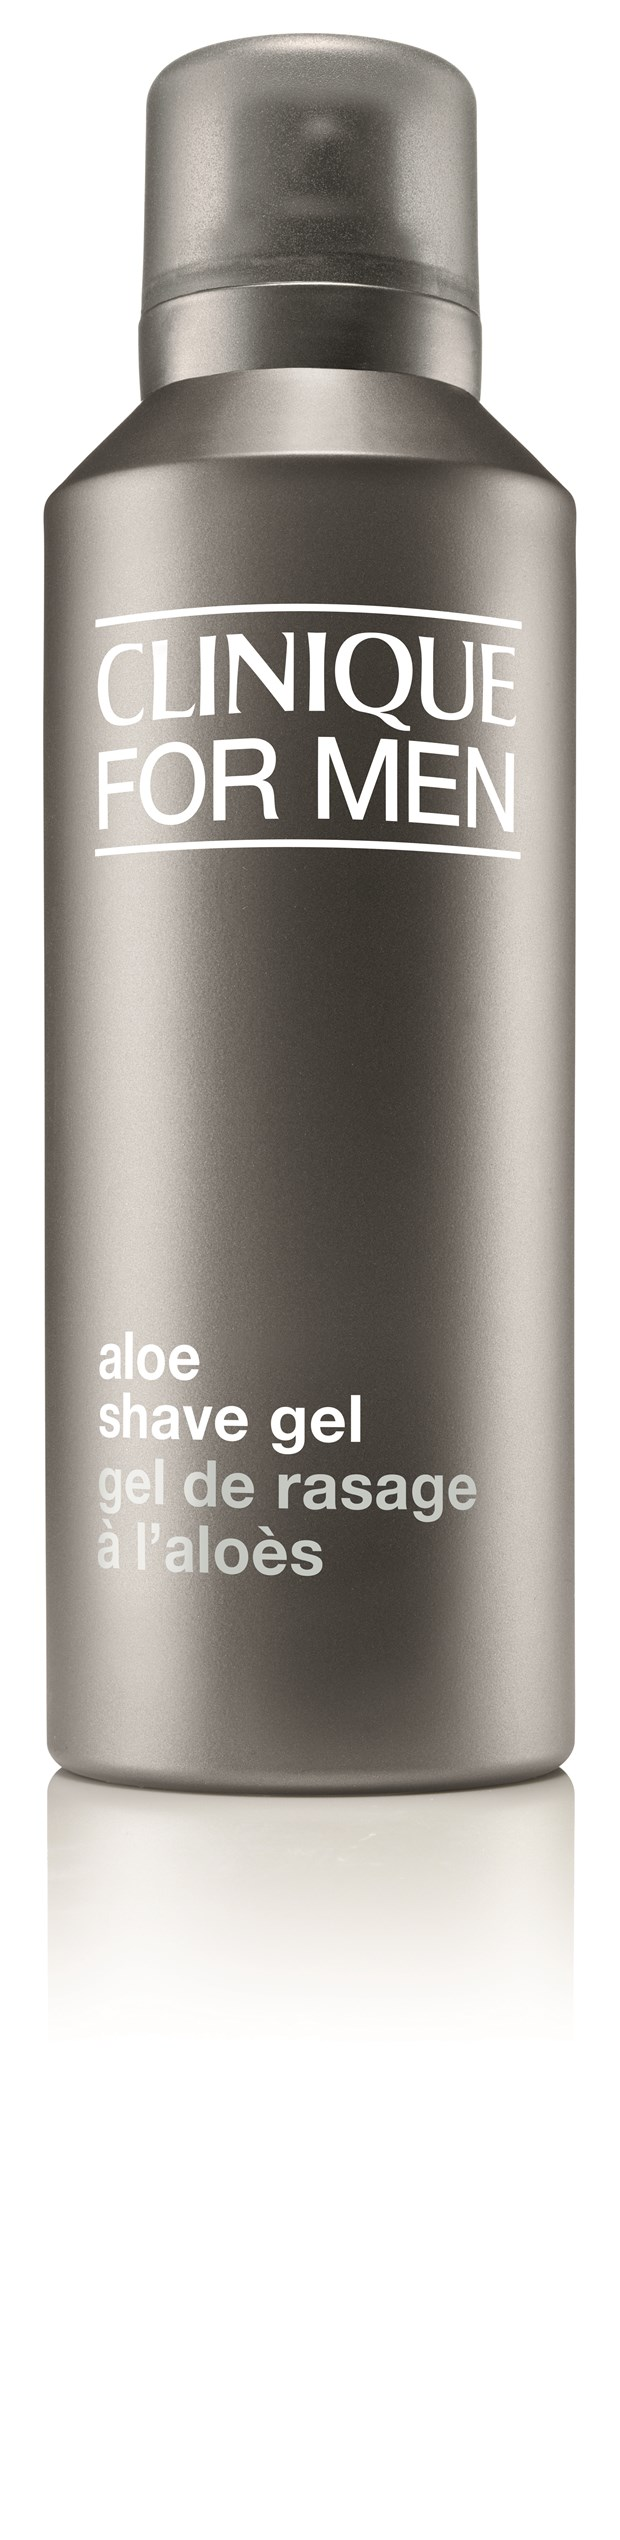 Clinique Gel de rasage à l'aloès